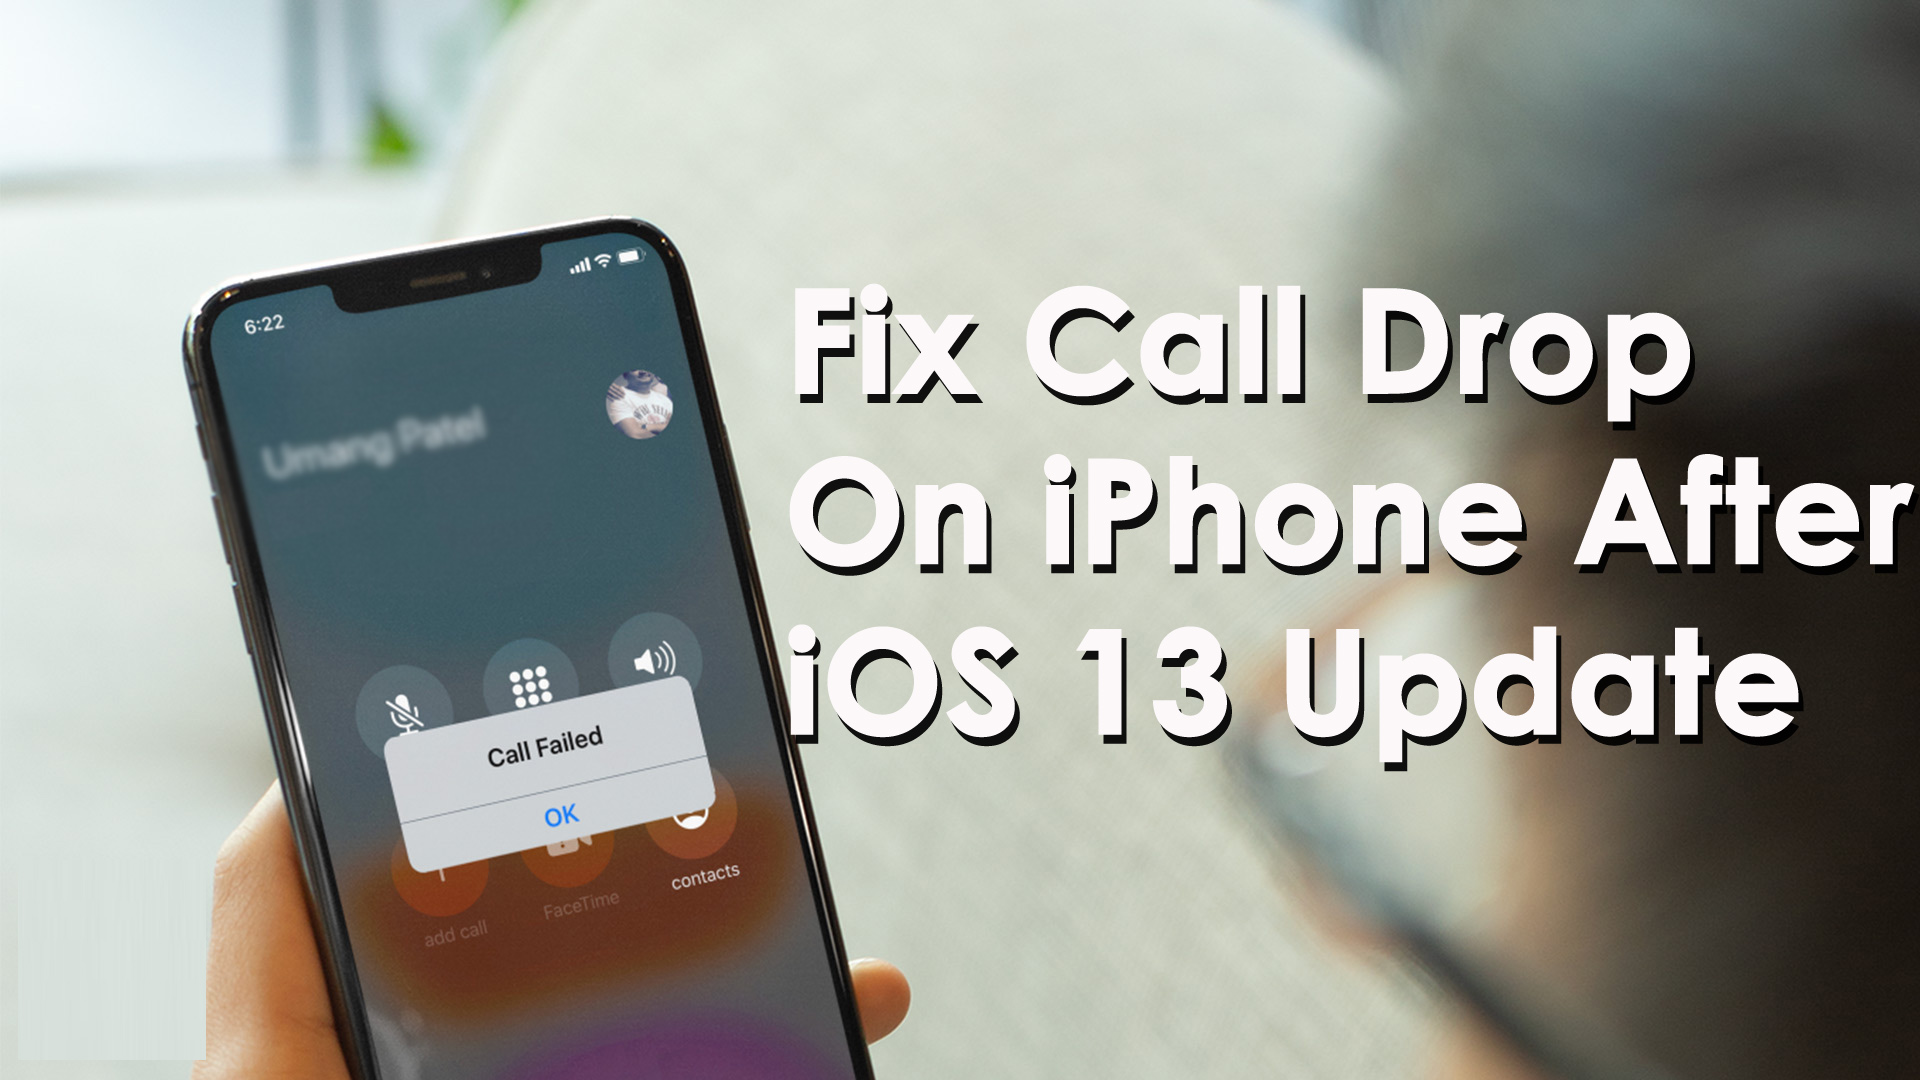 Fix Call Drop On iPhone After iOS 13 Update